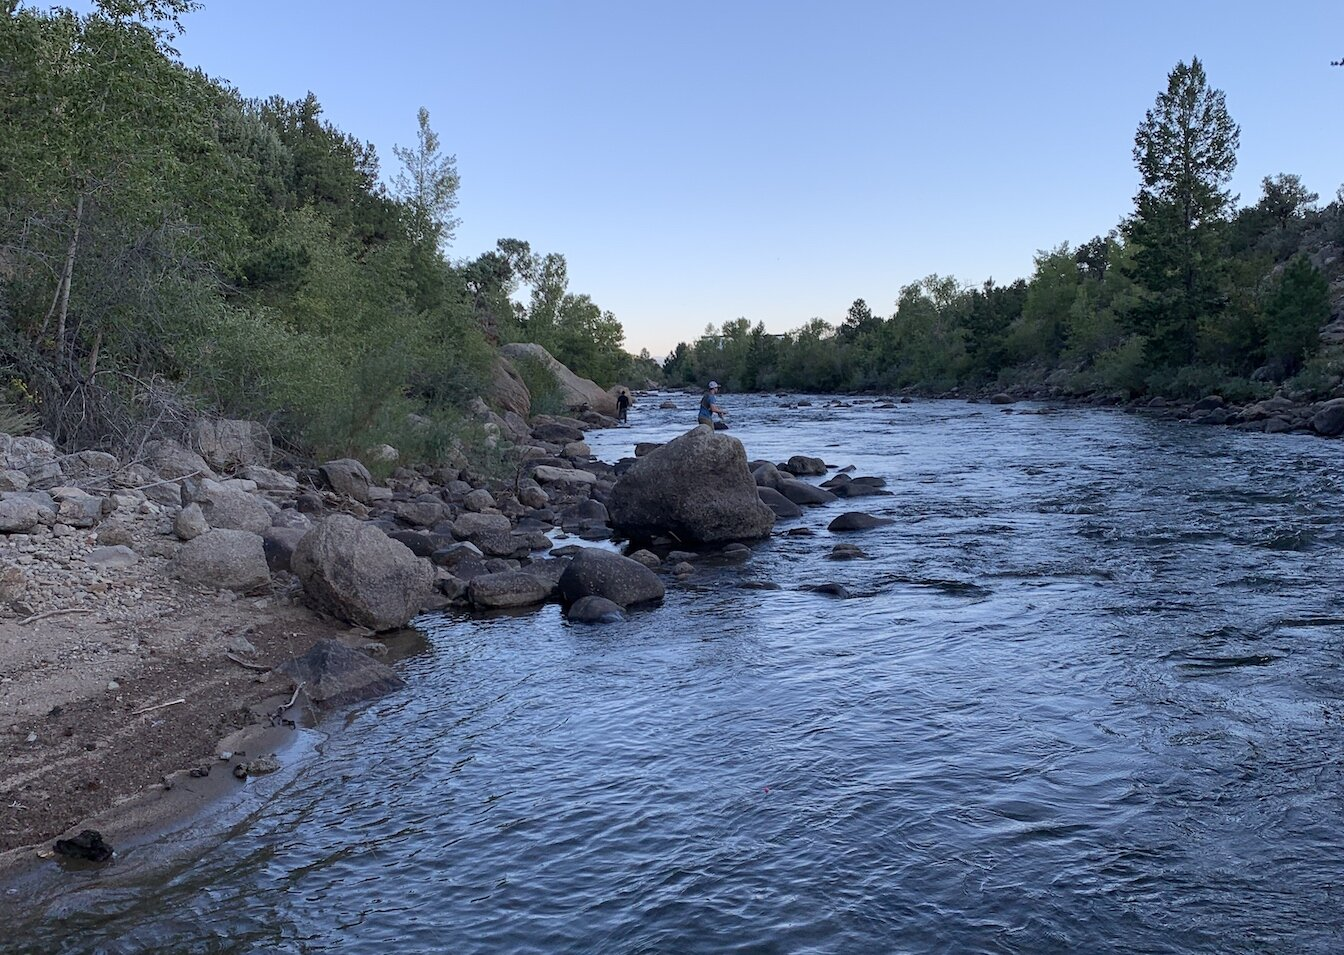 A serene stretch of the Arkansas River